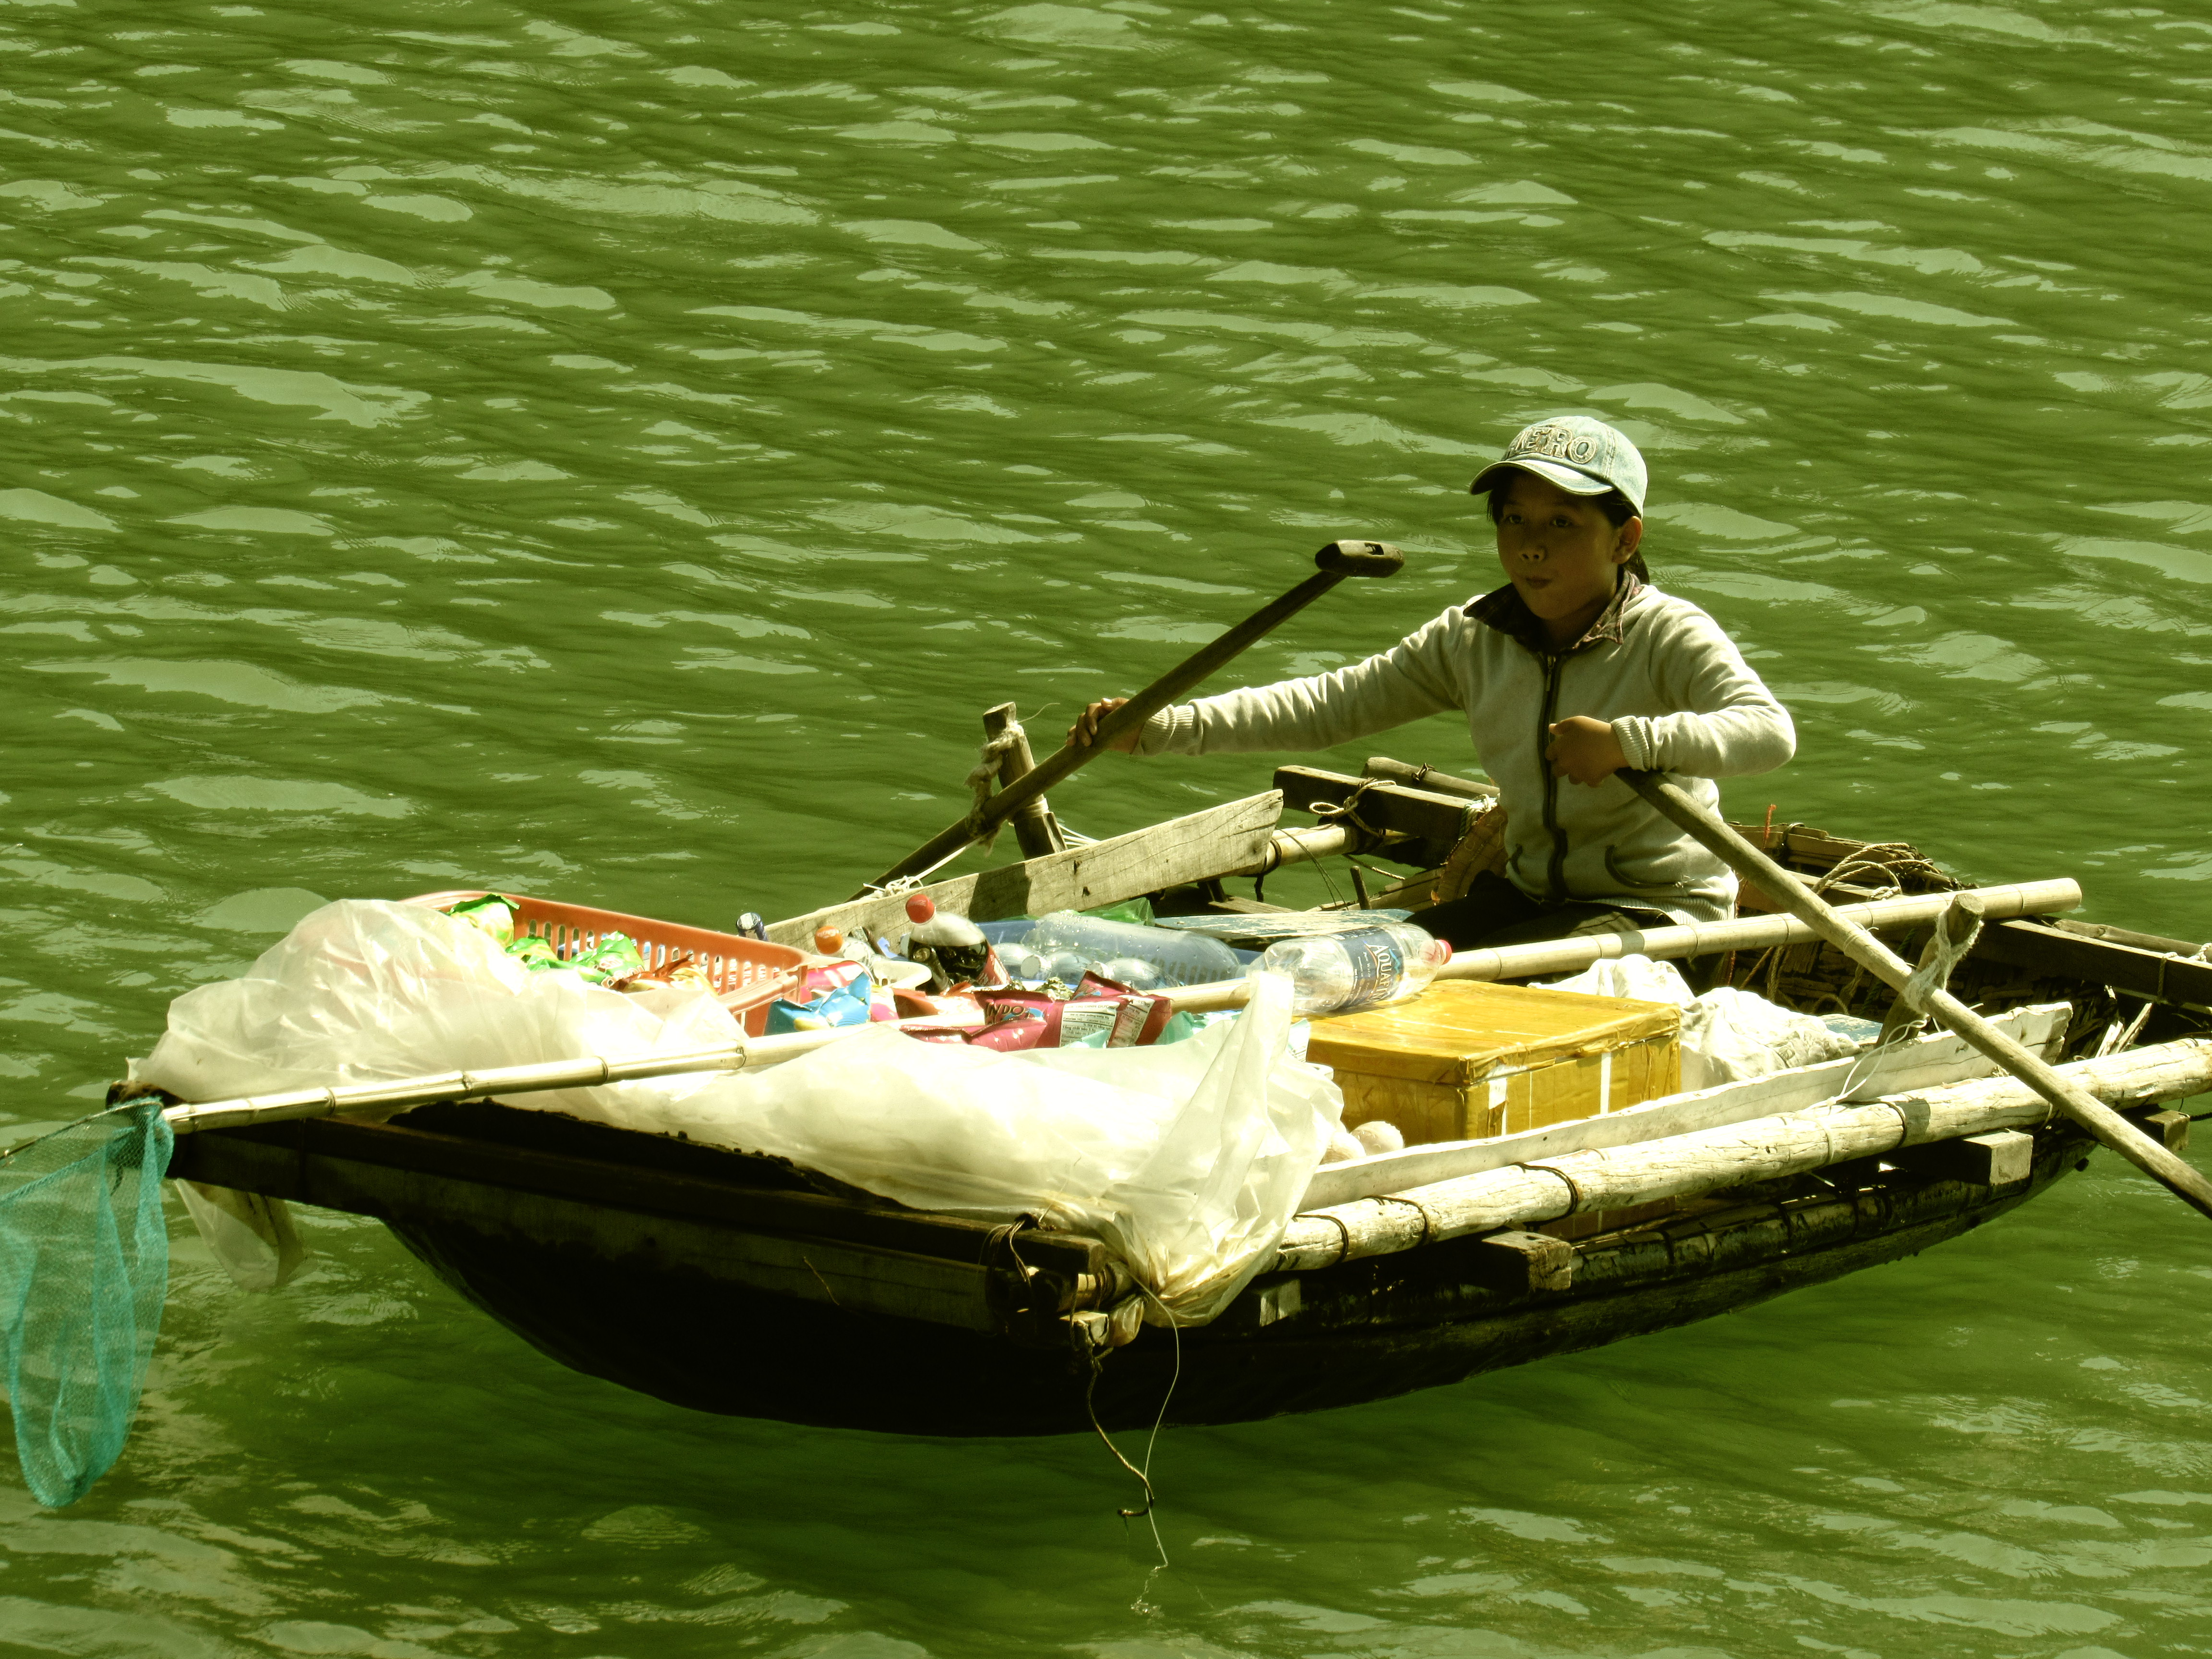 the lil' boat vendor